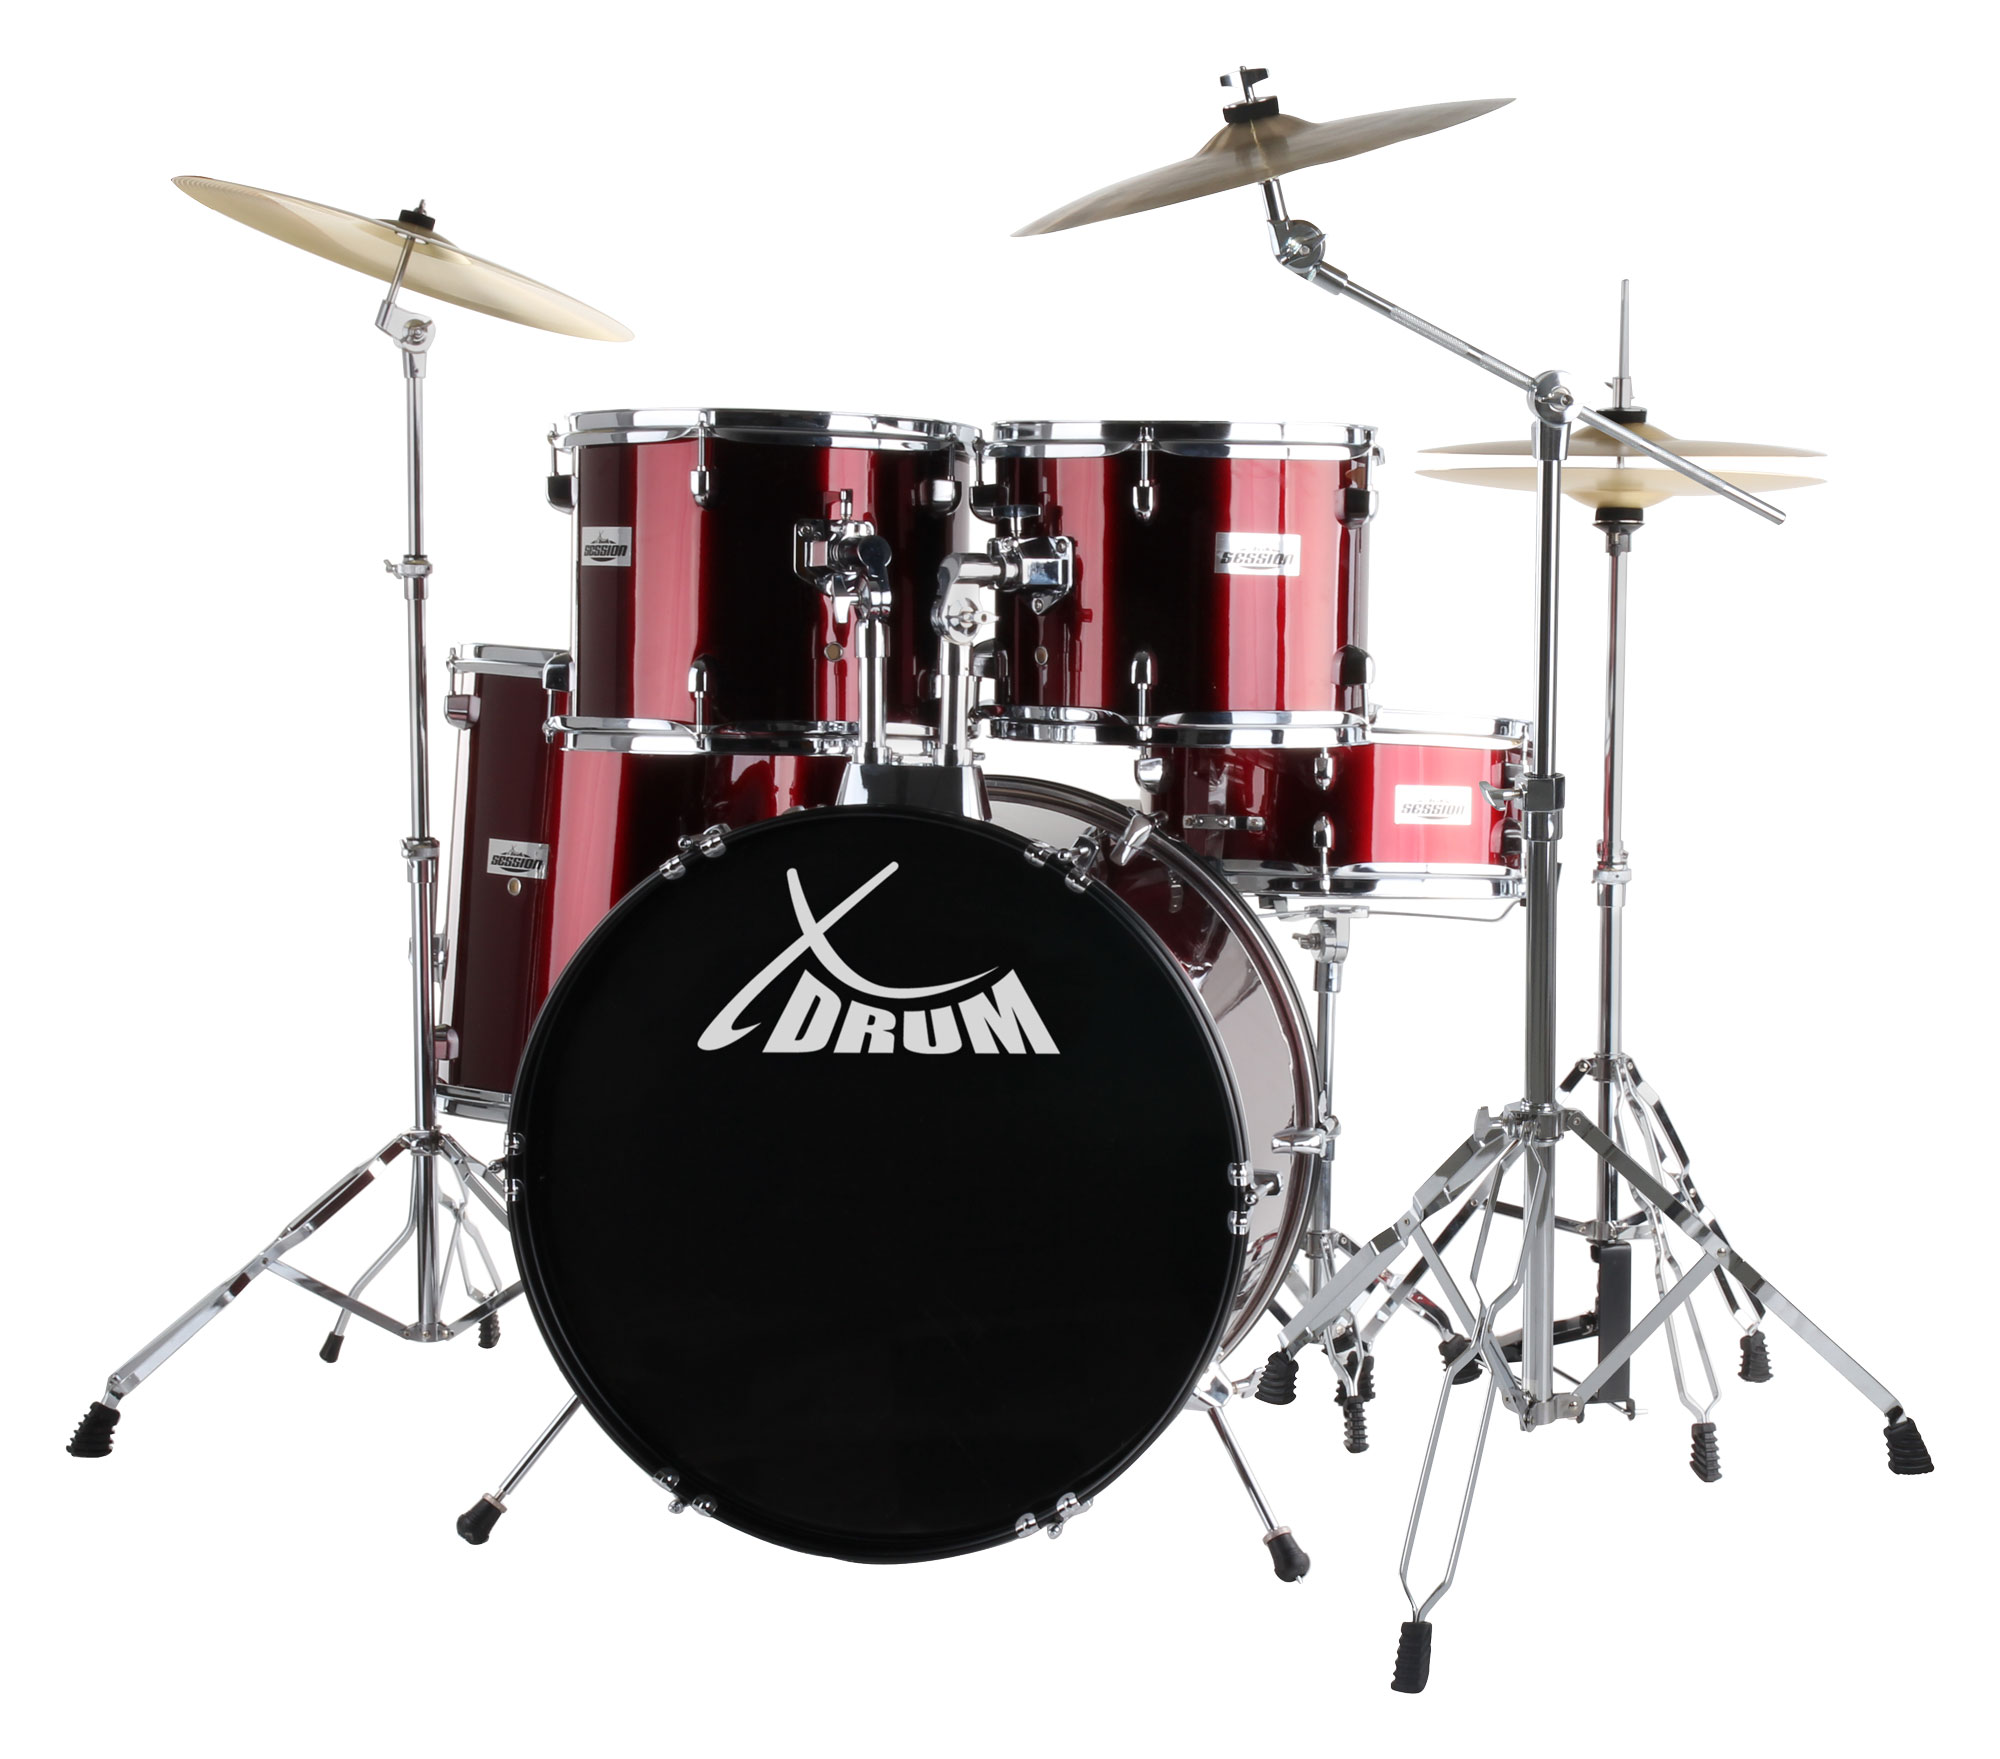 Xdrum Semi 22 Quot Standard Drumset Lipstick Red Set Incl